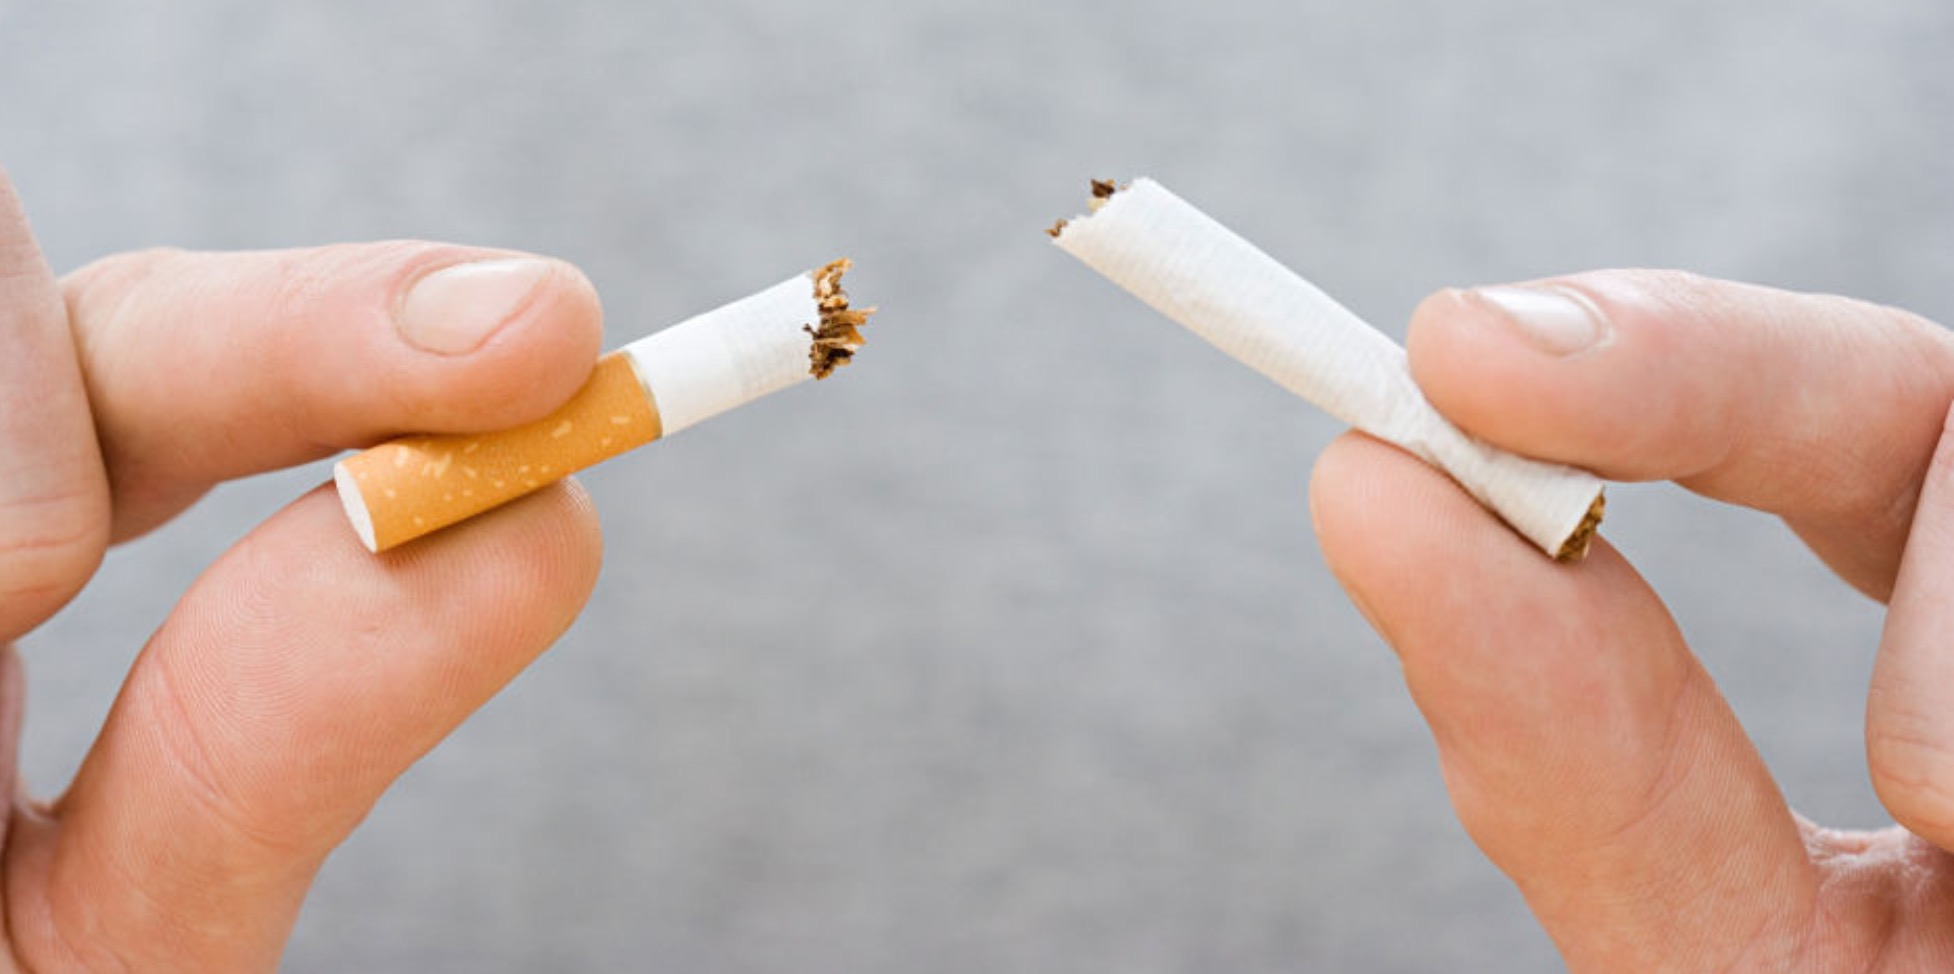 Menopause and smoking: Just say NO